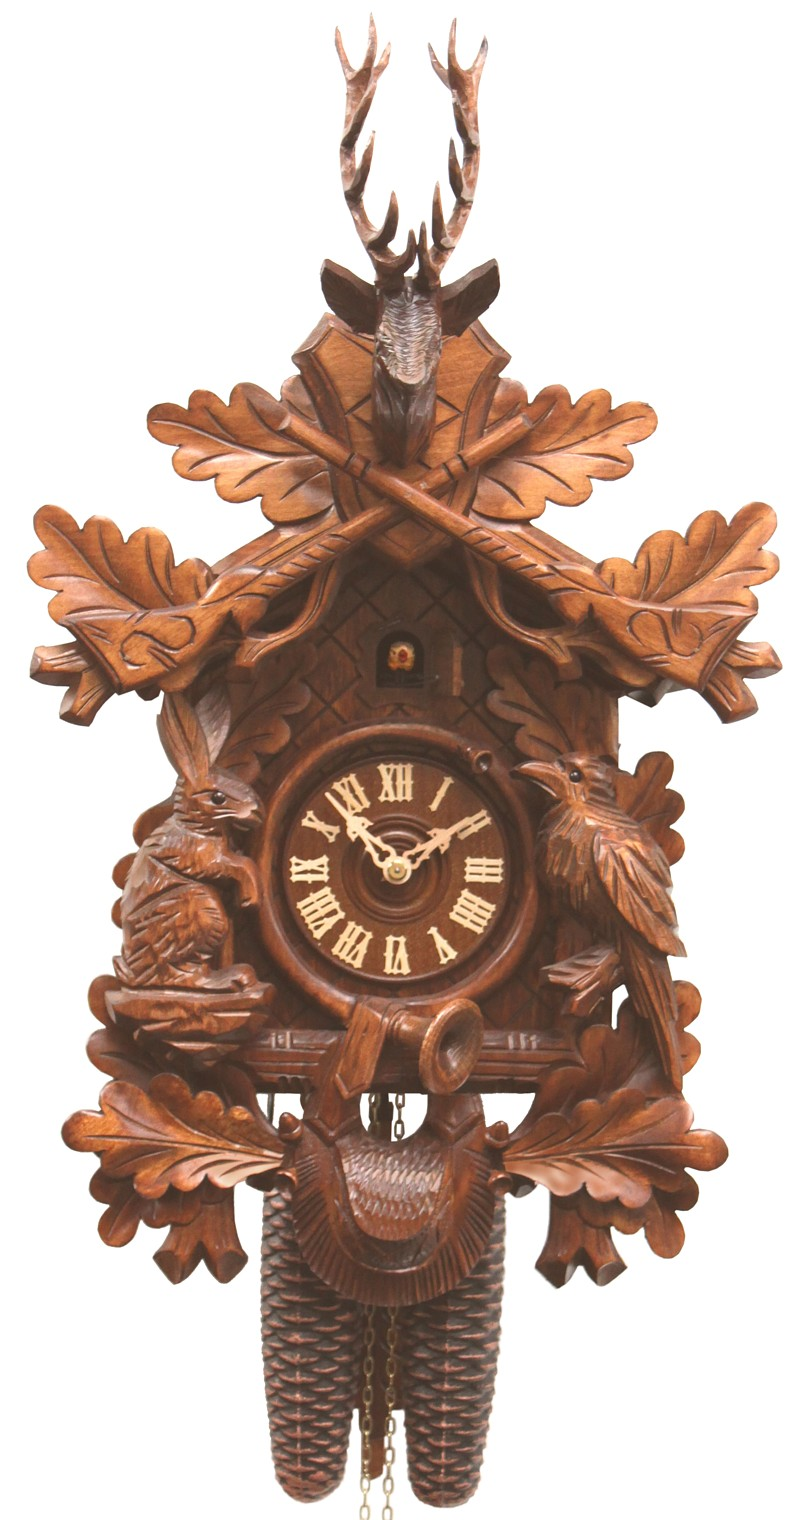 Cuckoo Clock Hunting Clock with Sitting Animals 8-Day Movement - Cuckoo Clock Meister